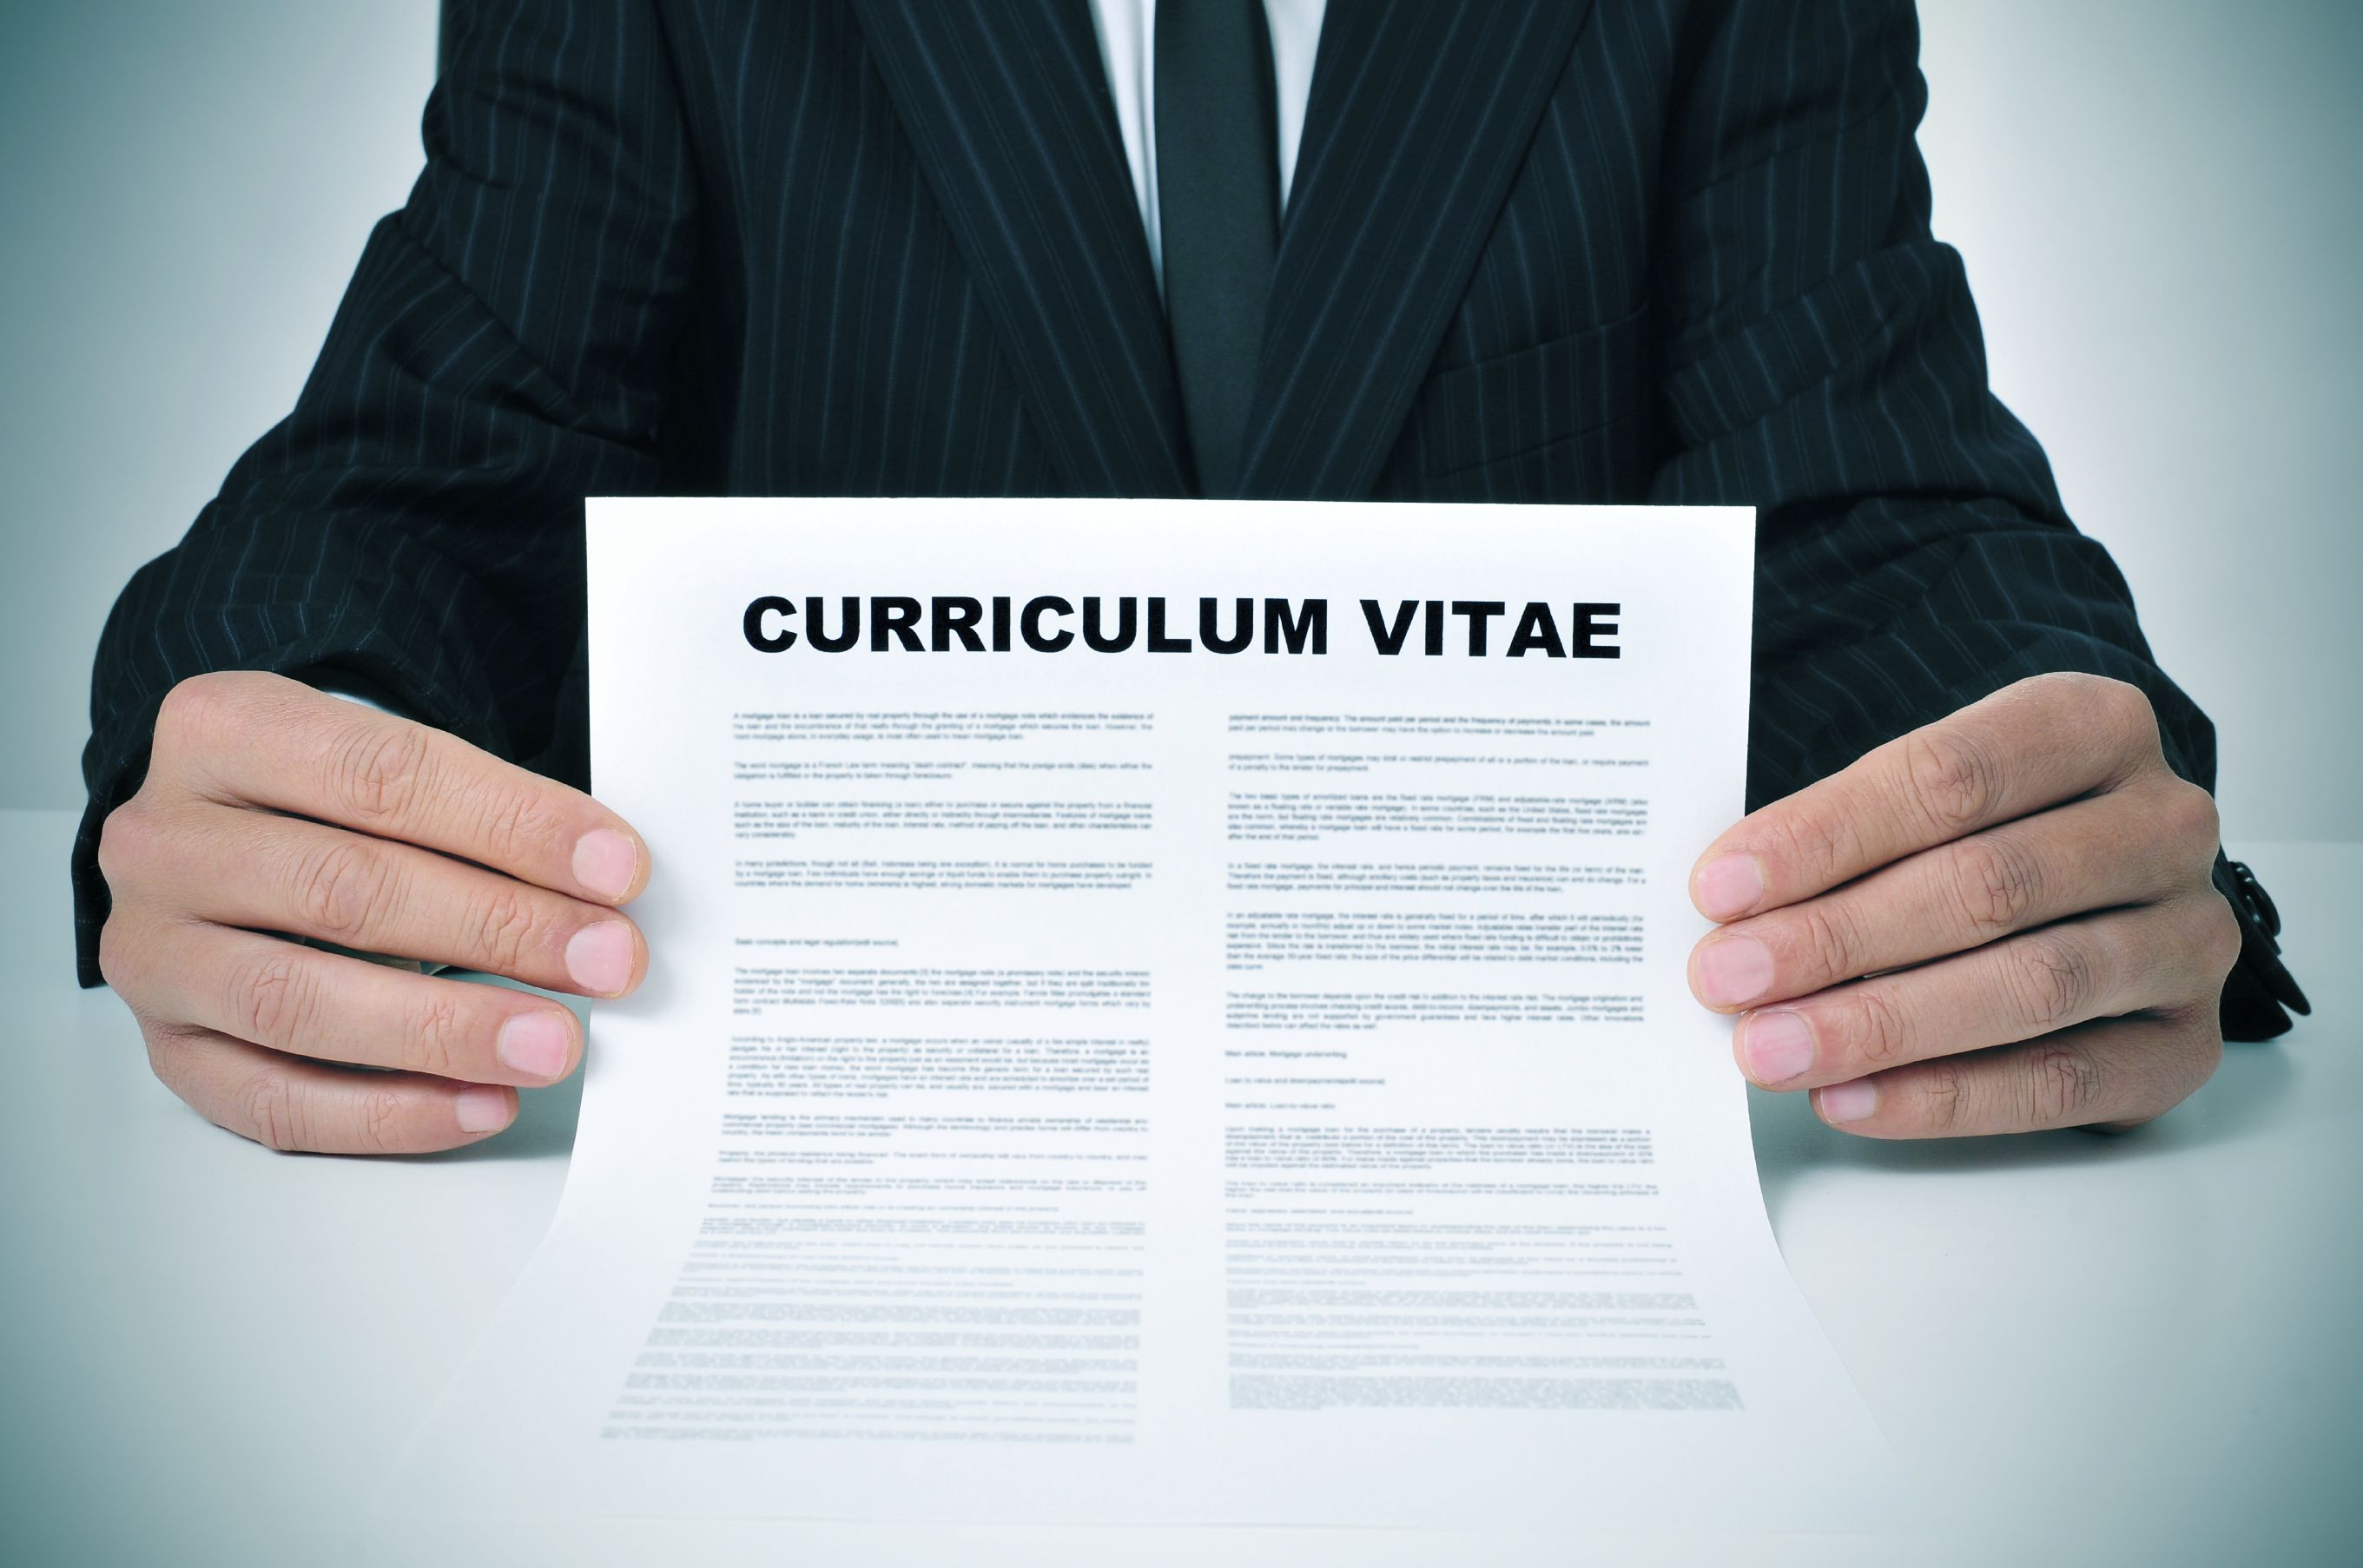 customize your curriculum vitae cv with this template - Curriculaum Vitae